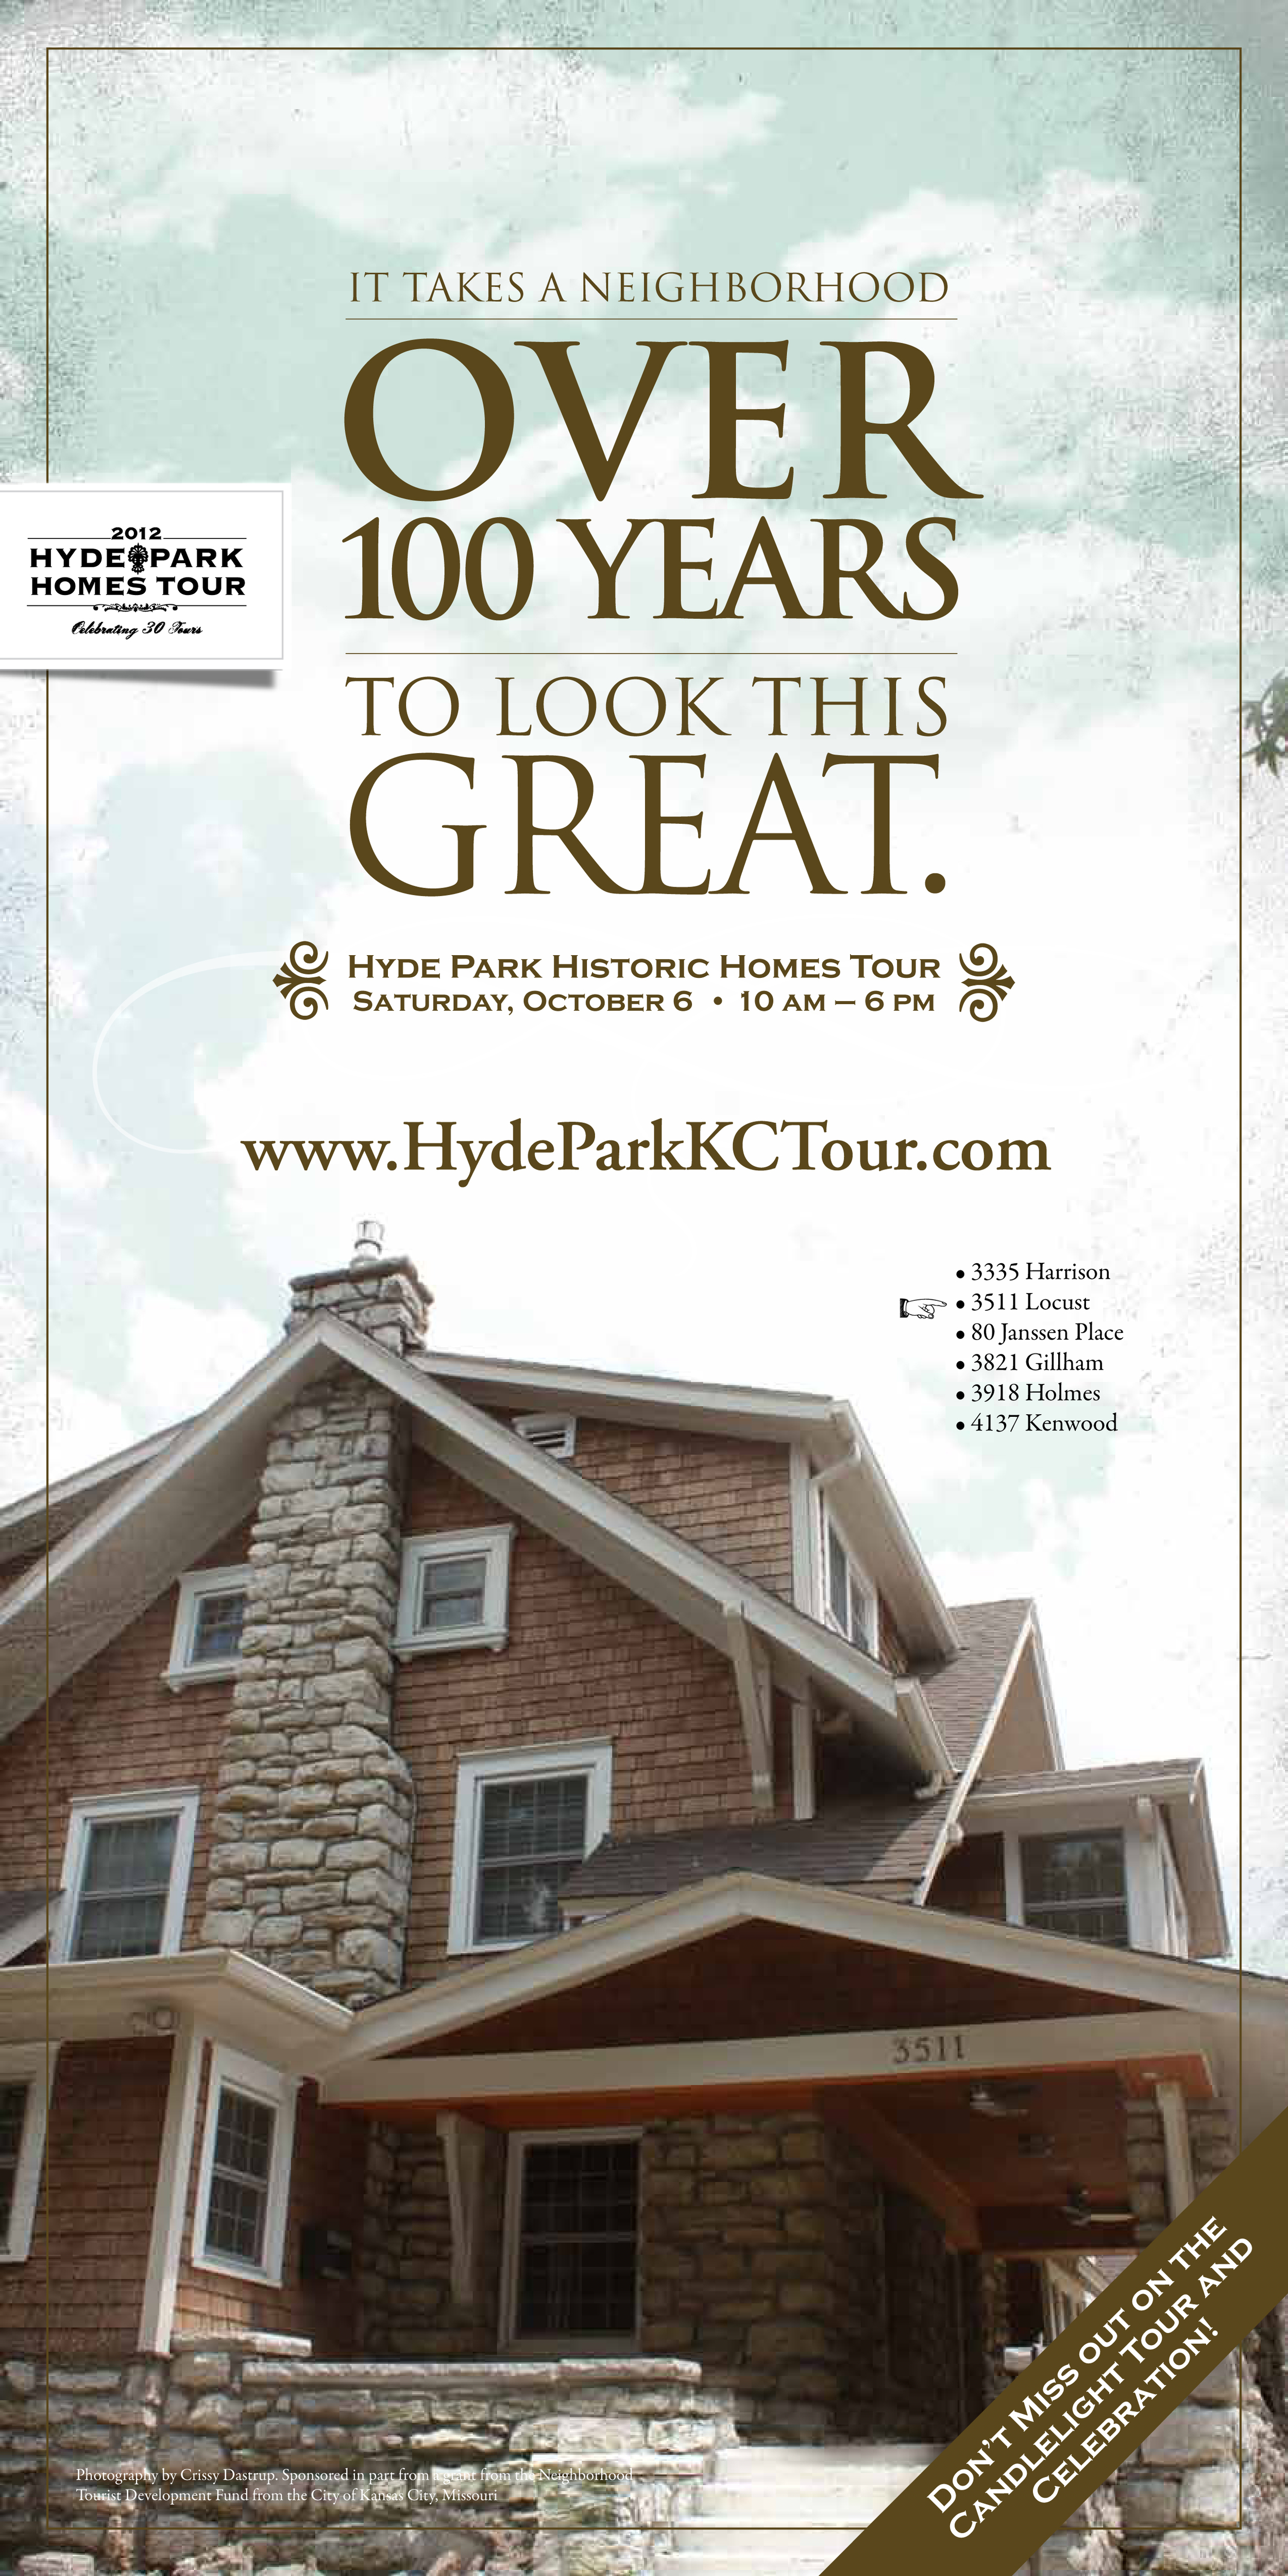 Homes Tour Flyer Locust.jpg